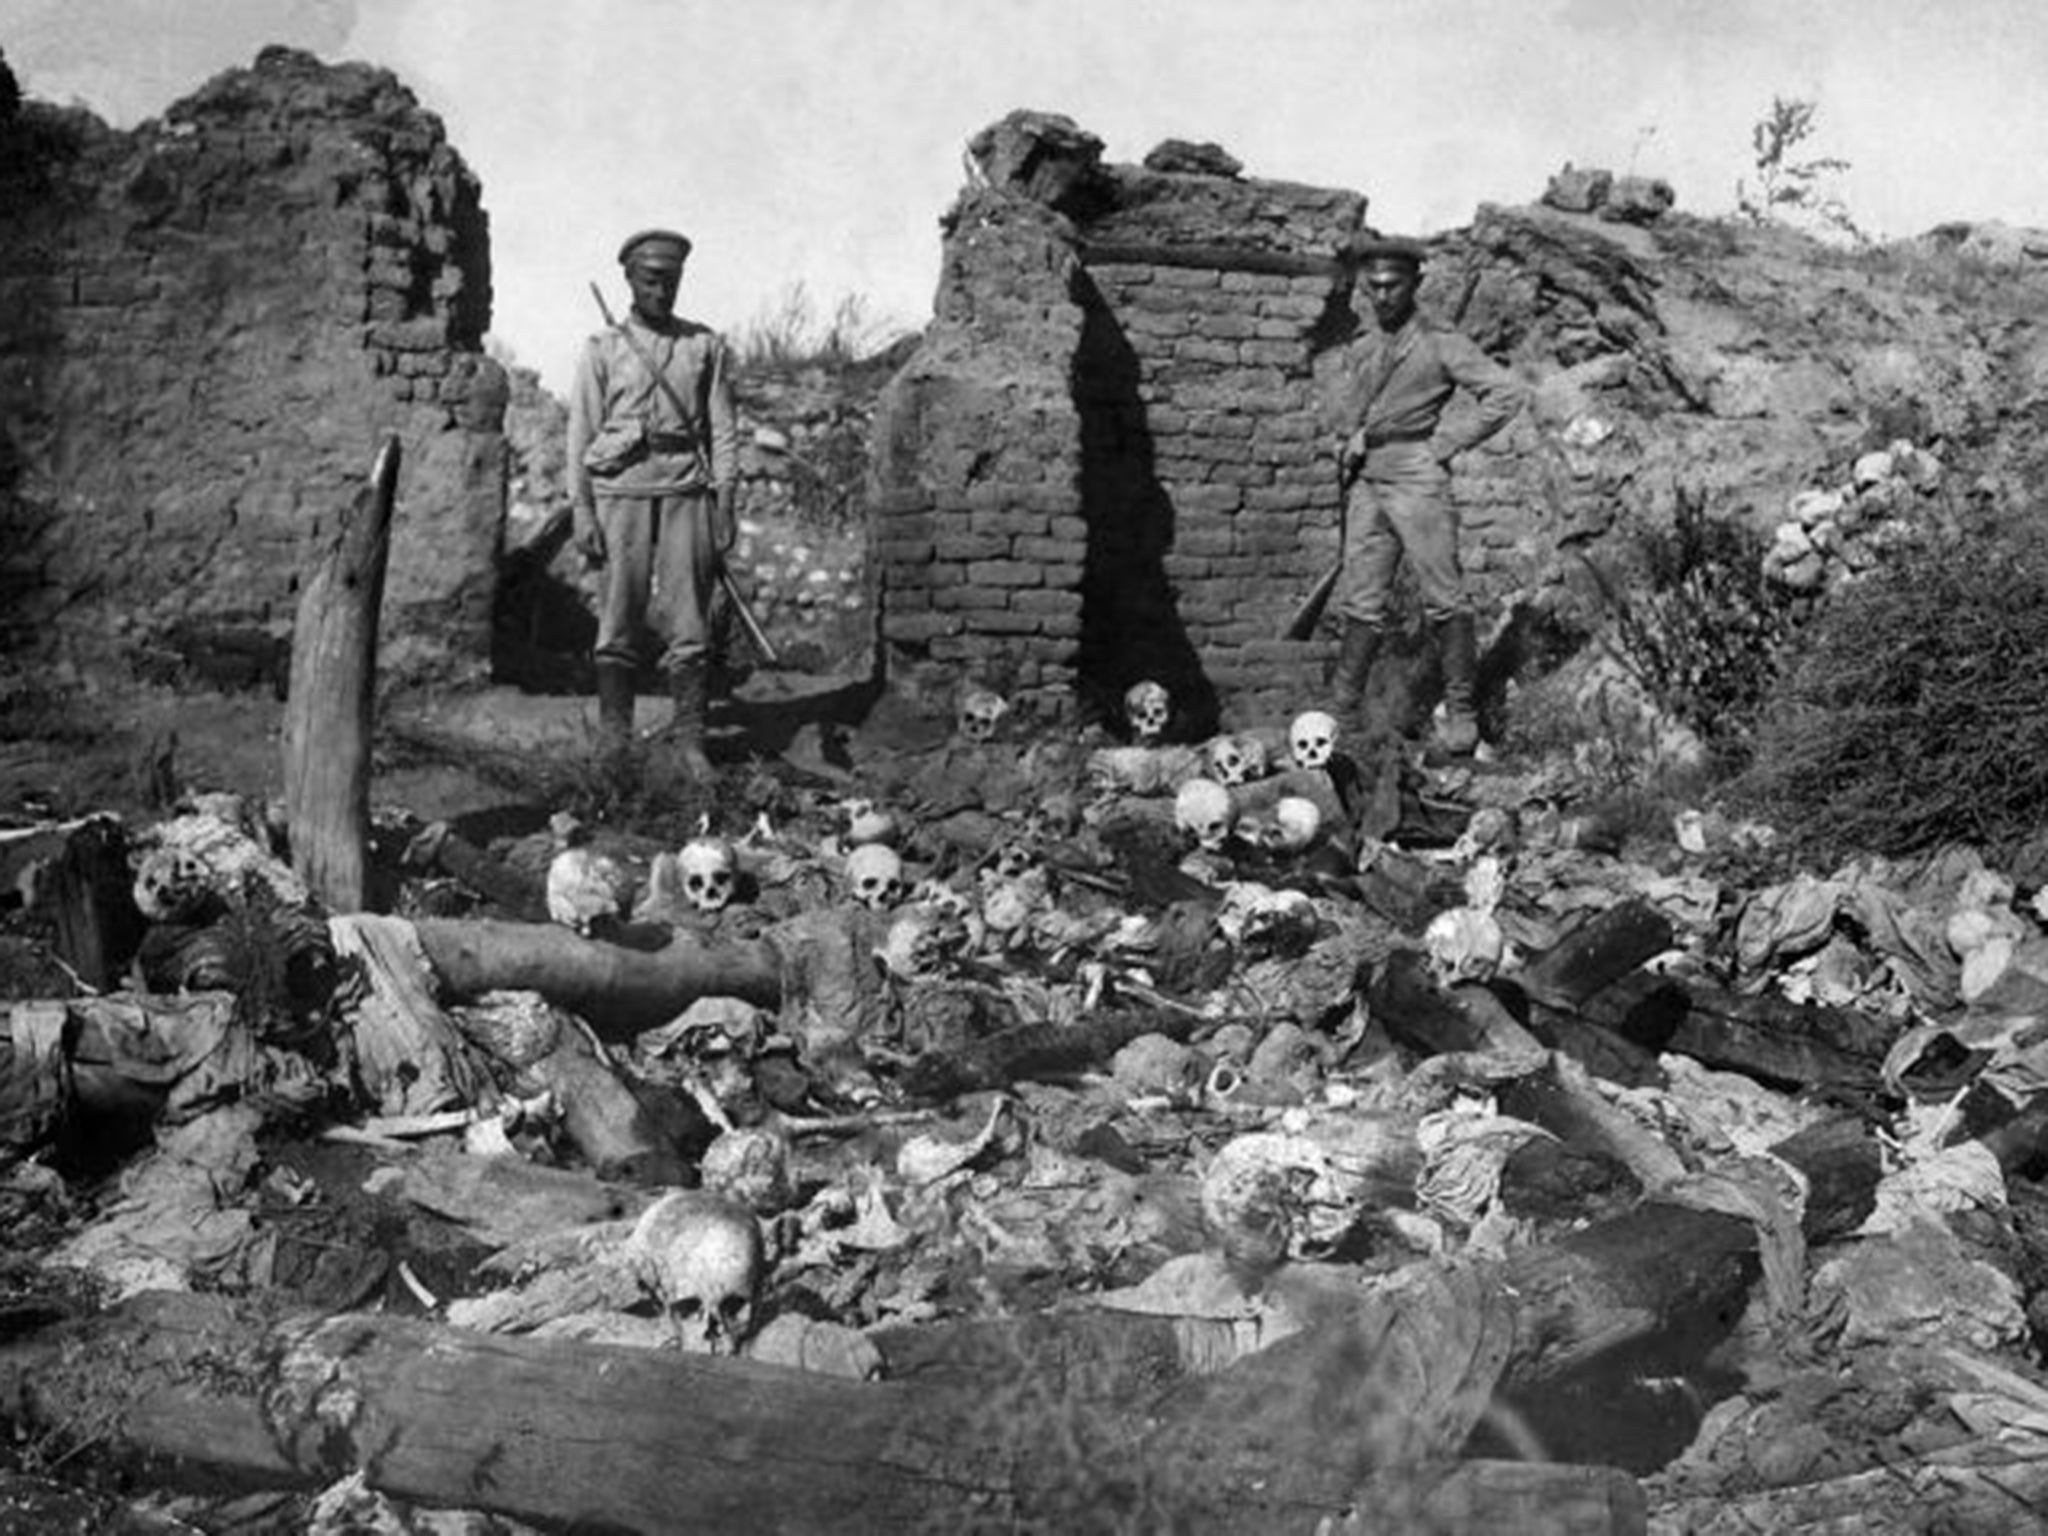 Portrayal similarities of genocide